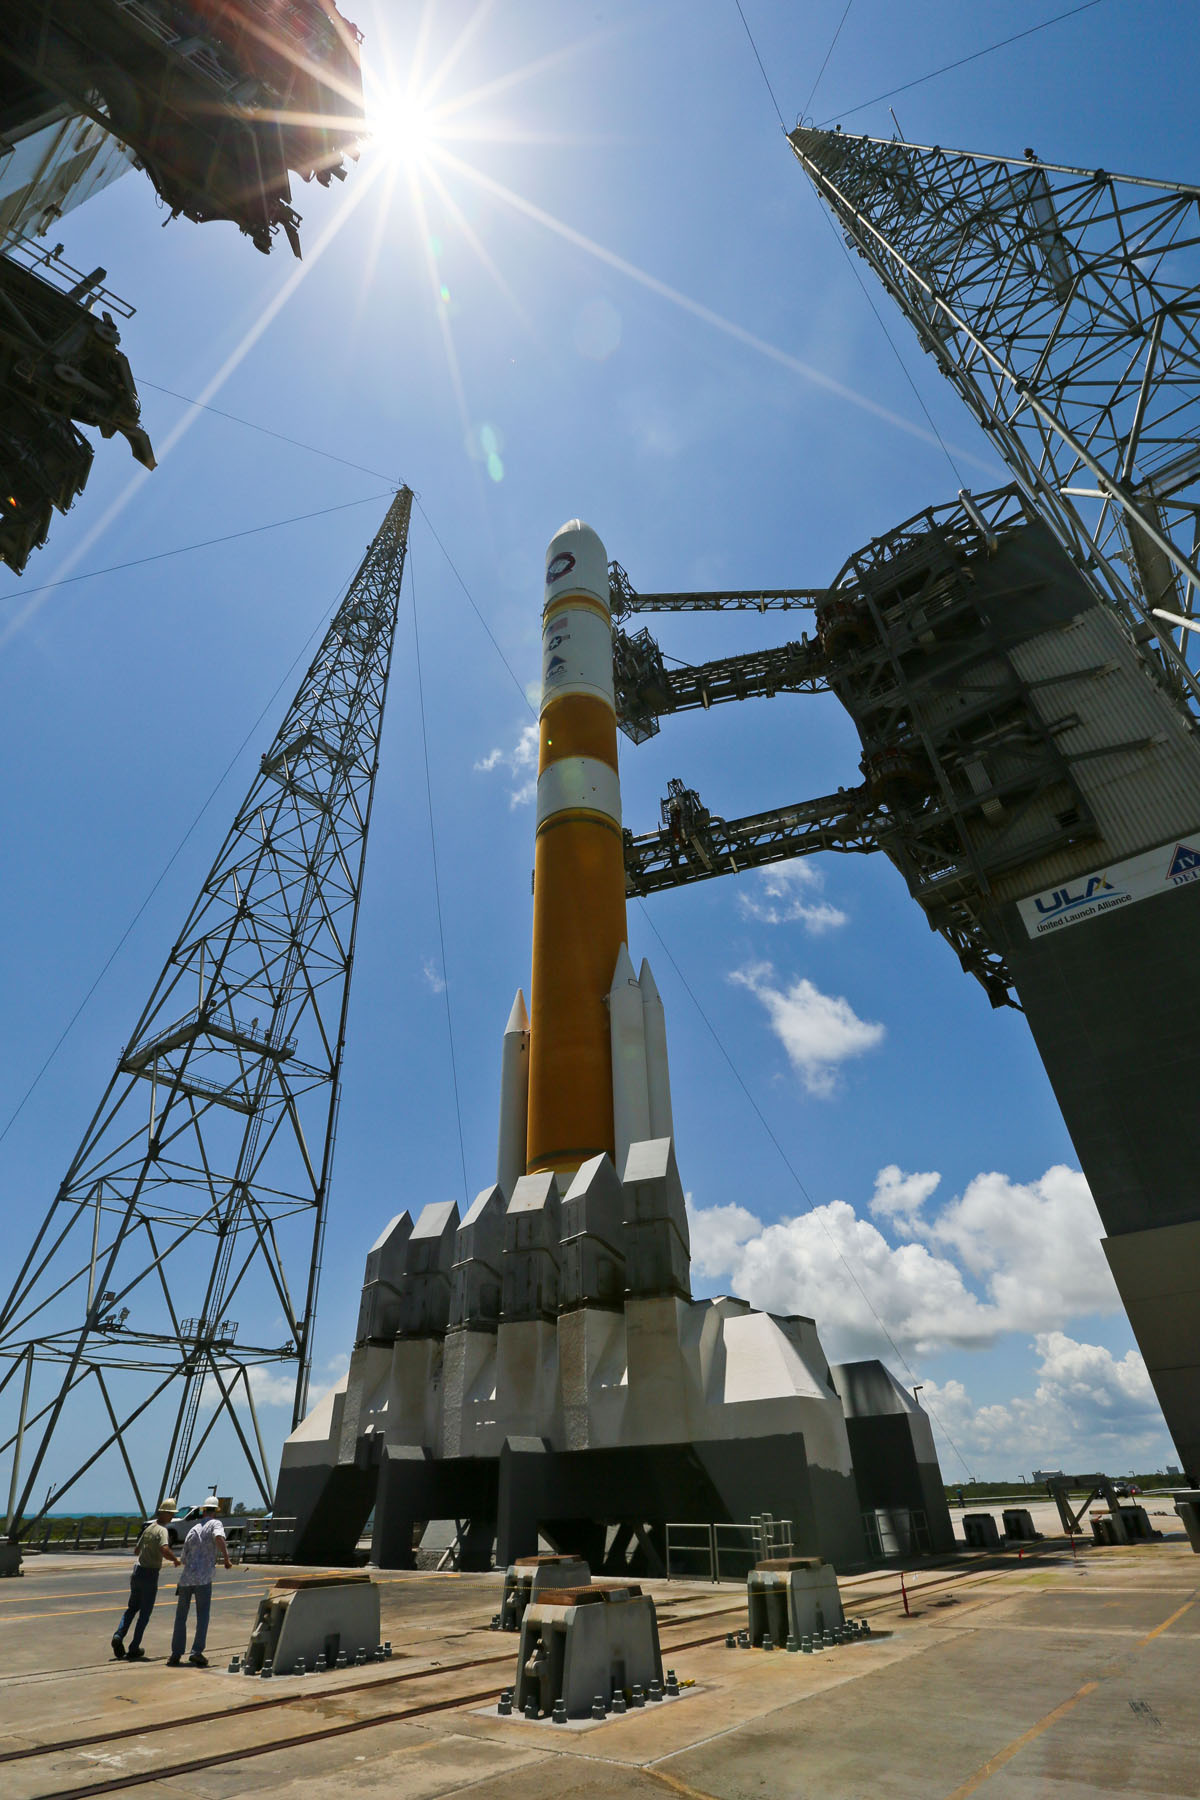 Delta 4 Rocket Prepared for Launch